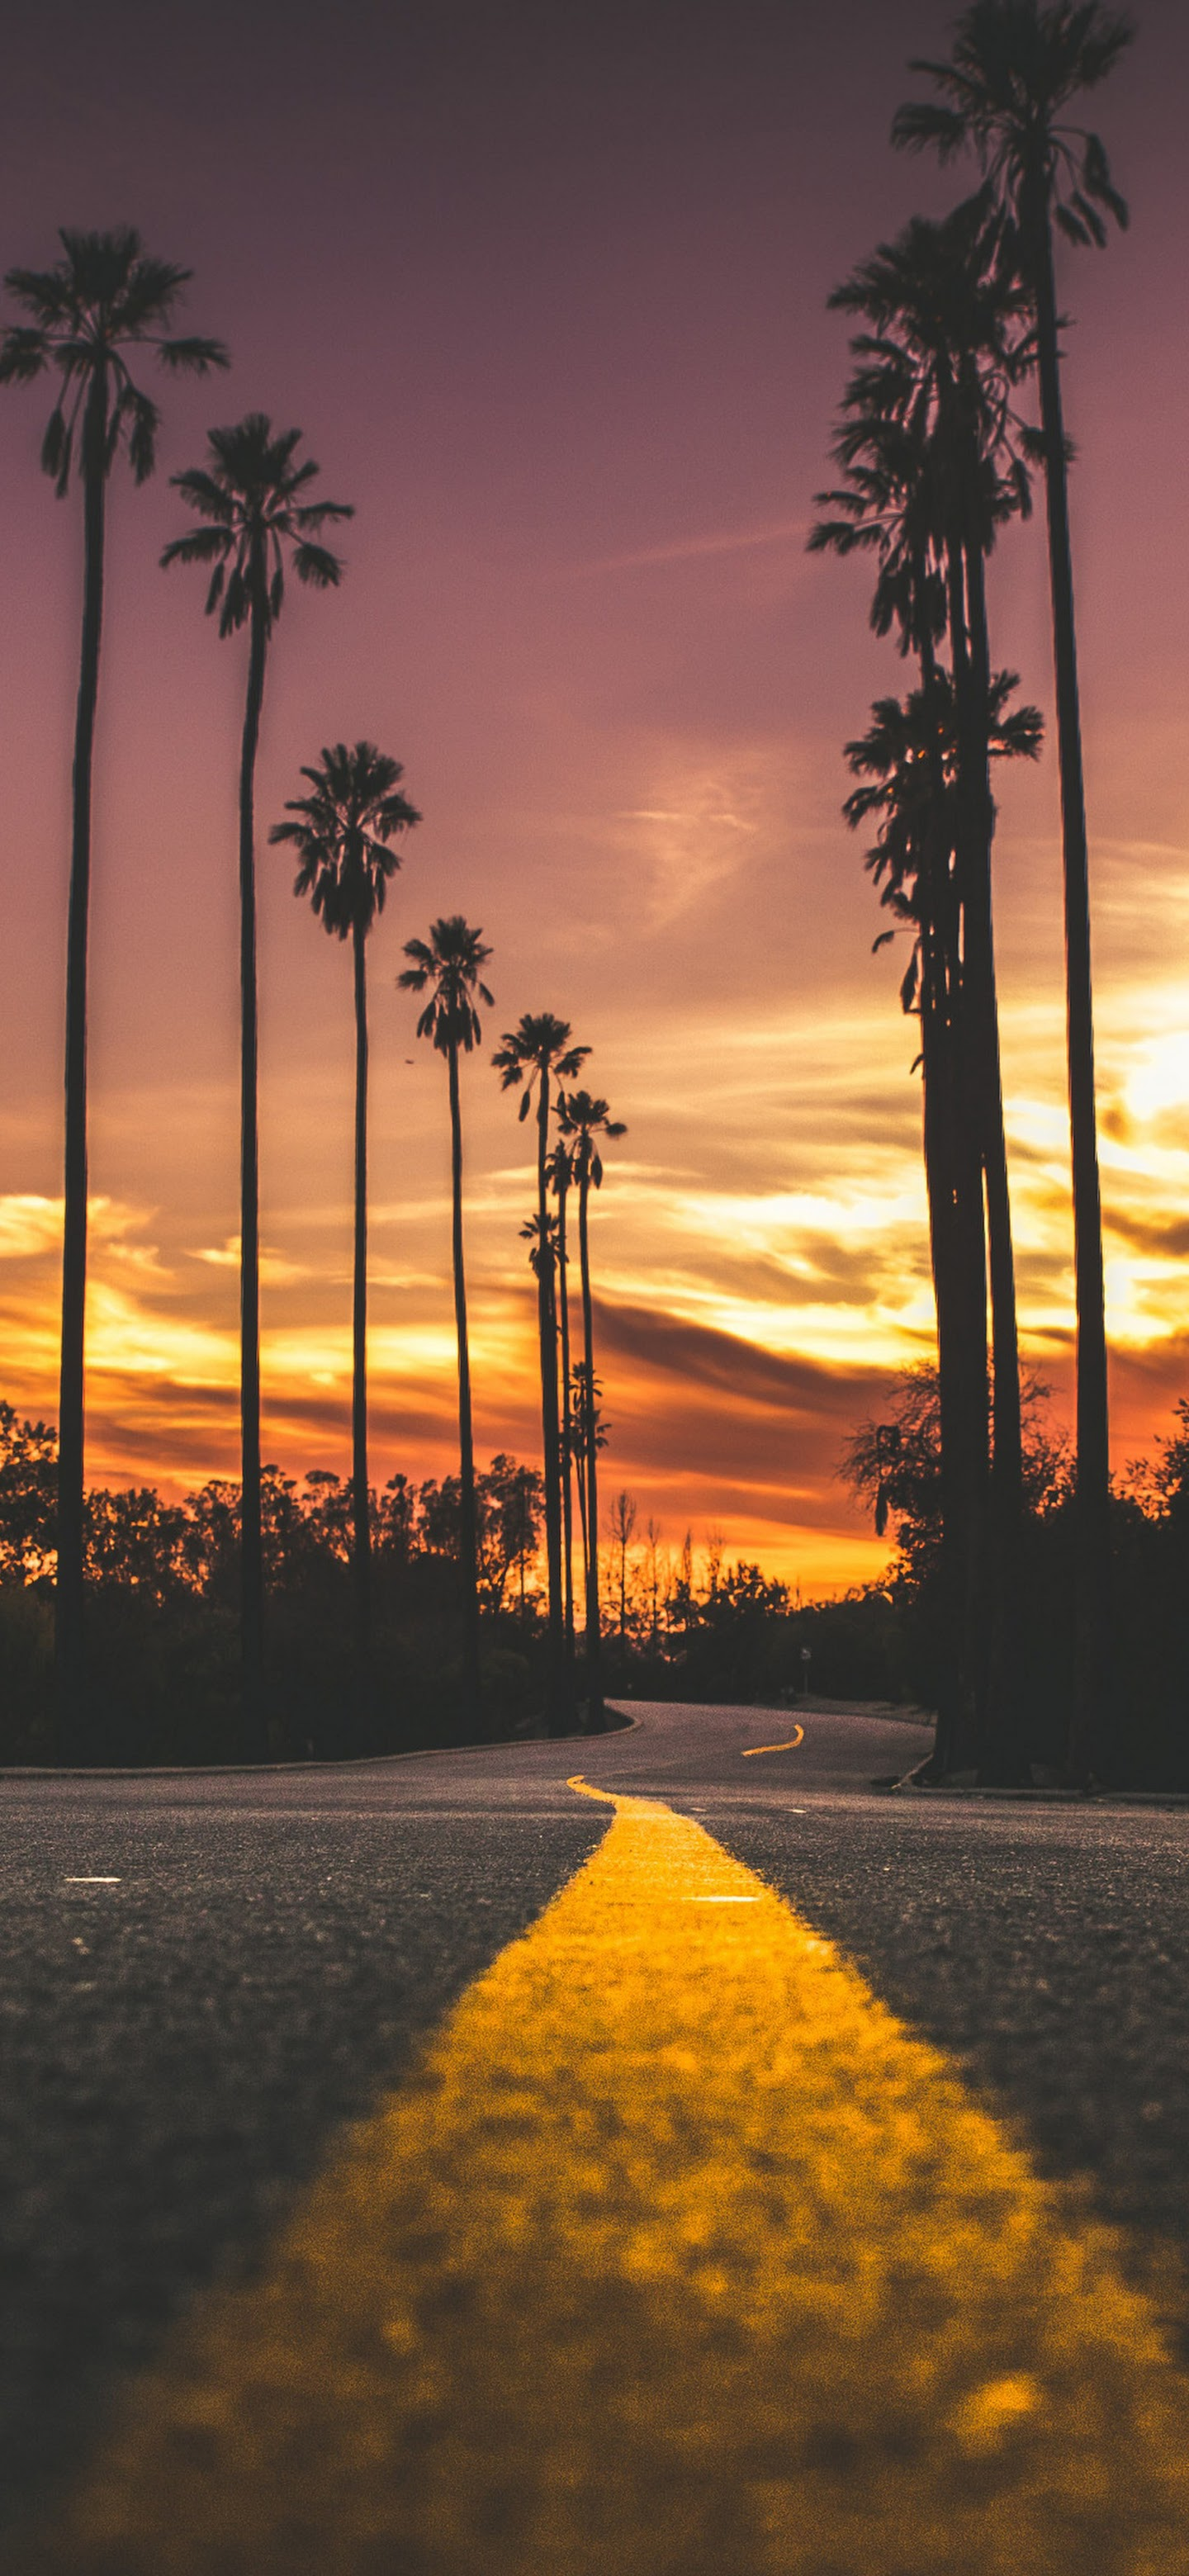 Sunset Road Landscape Scenery 4k Wallpaper 170